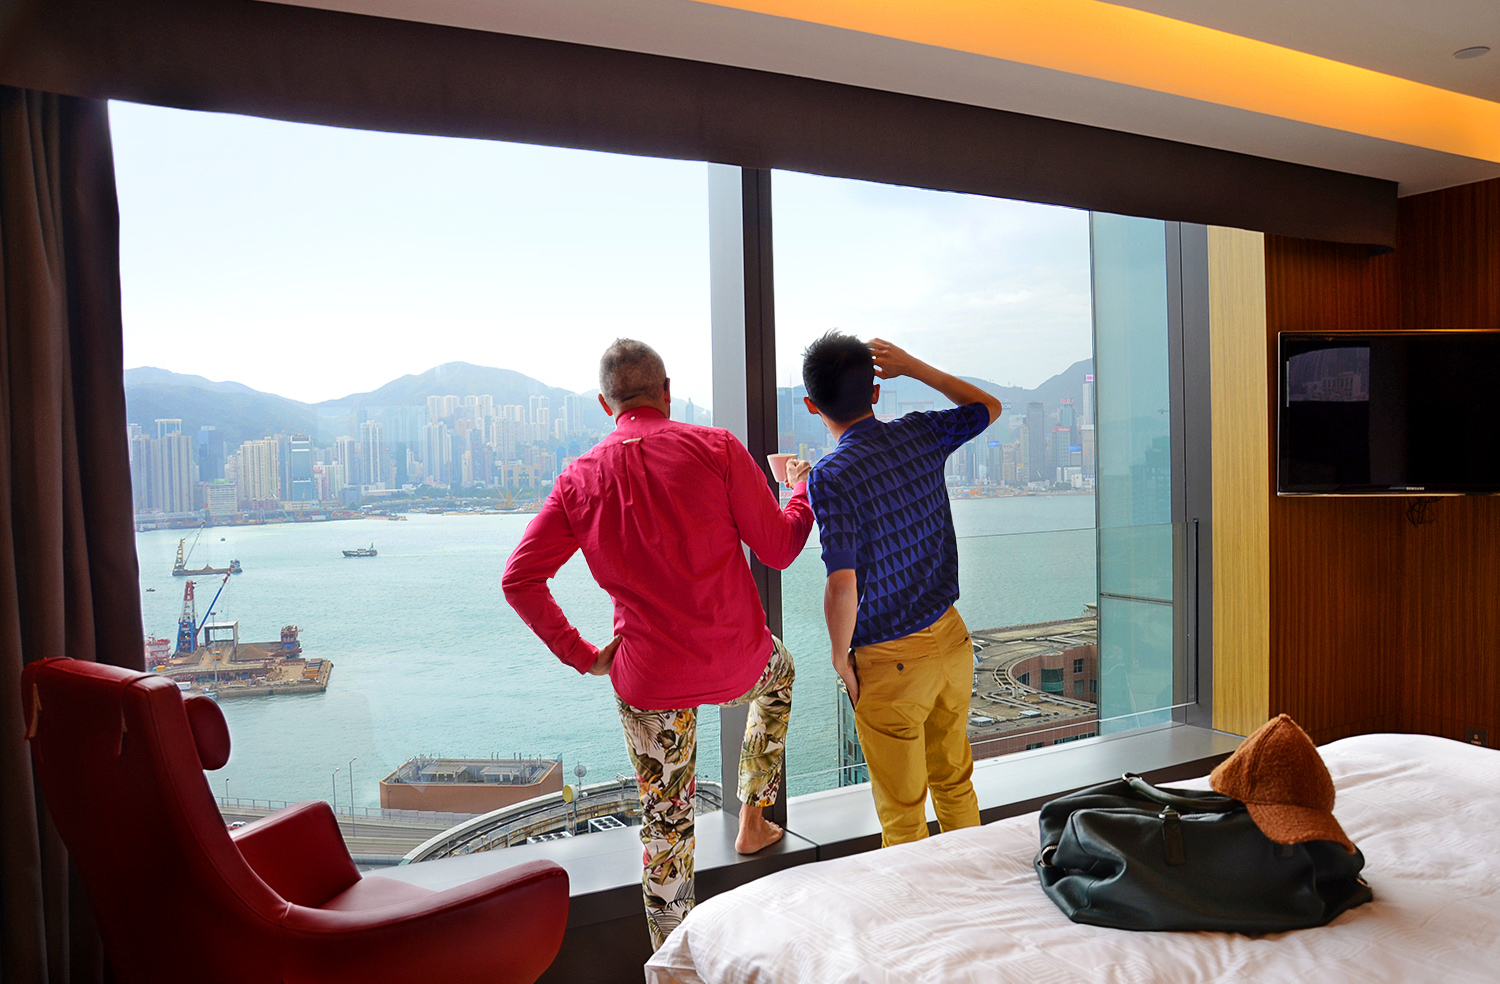 Hotel Icon Hong Kong, Club 38 Harbour room, Australia travel blog, Raf Simons knit jumper, AMI floral jeans, Where to stay in Hong Kong